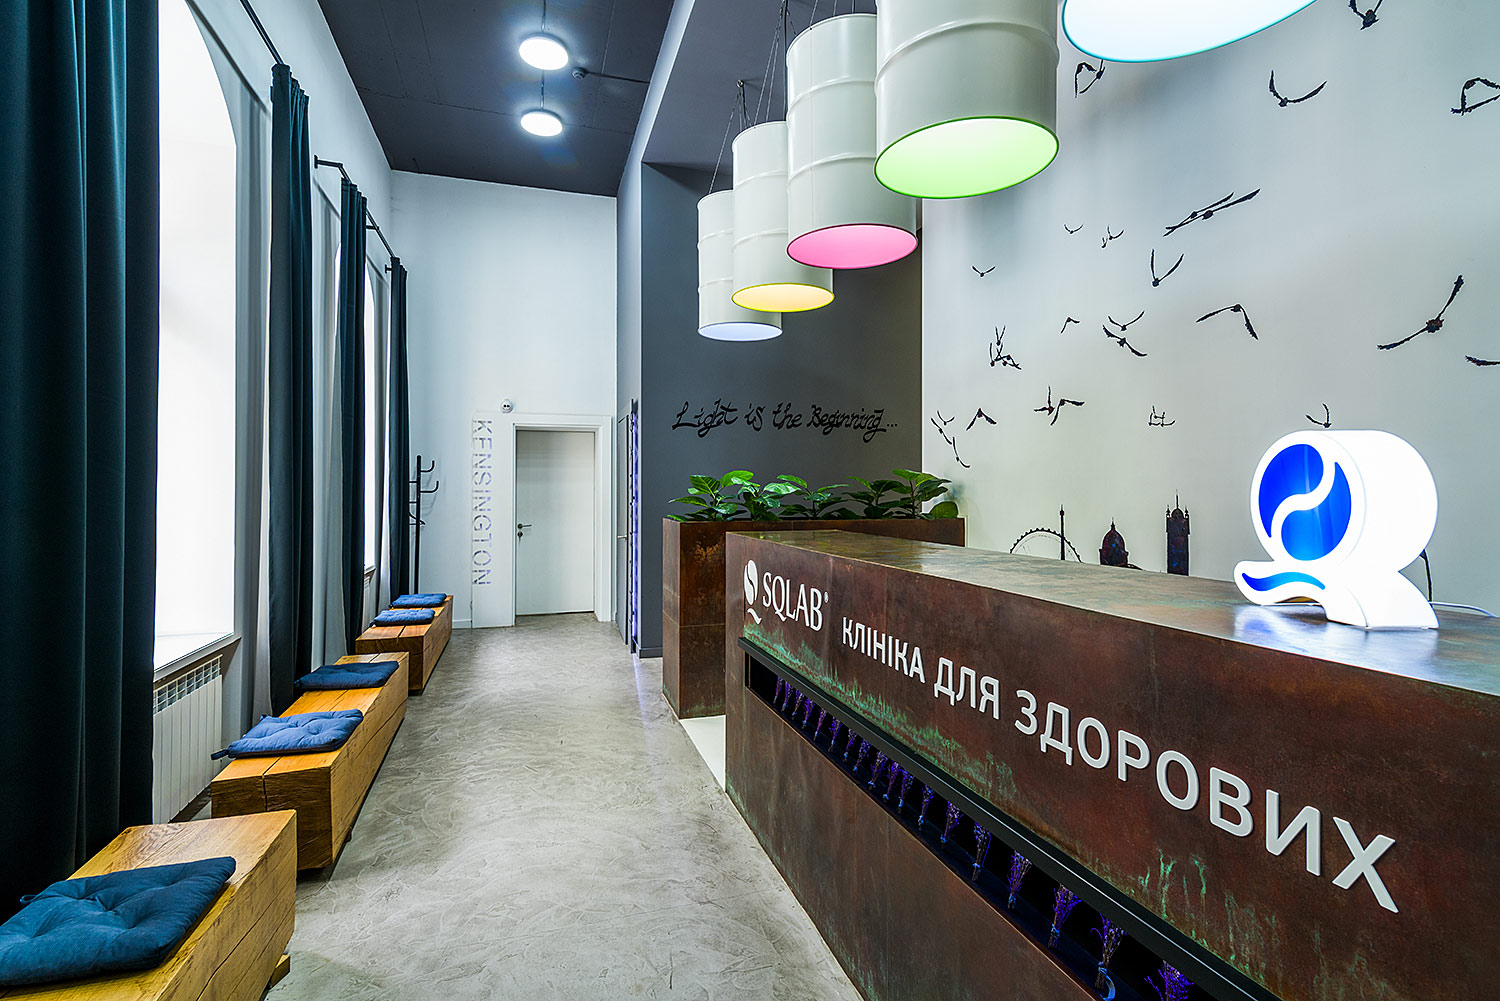 SQLAB clinic reception desk branding, and manufacture of the designer tabletop lamp in the shape of a logo.